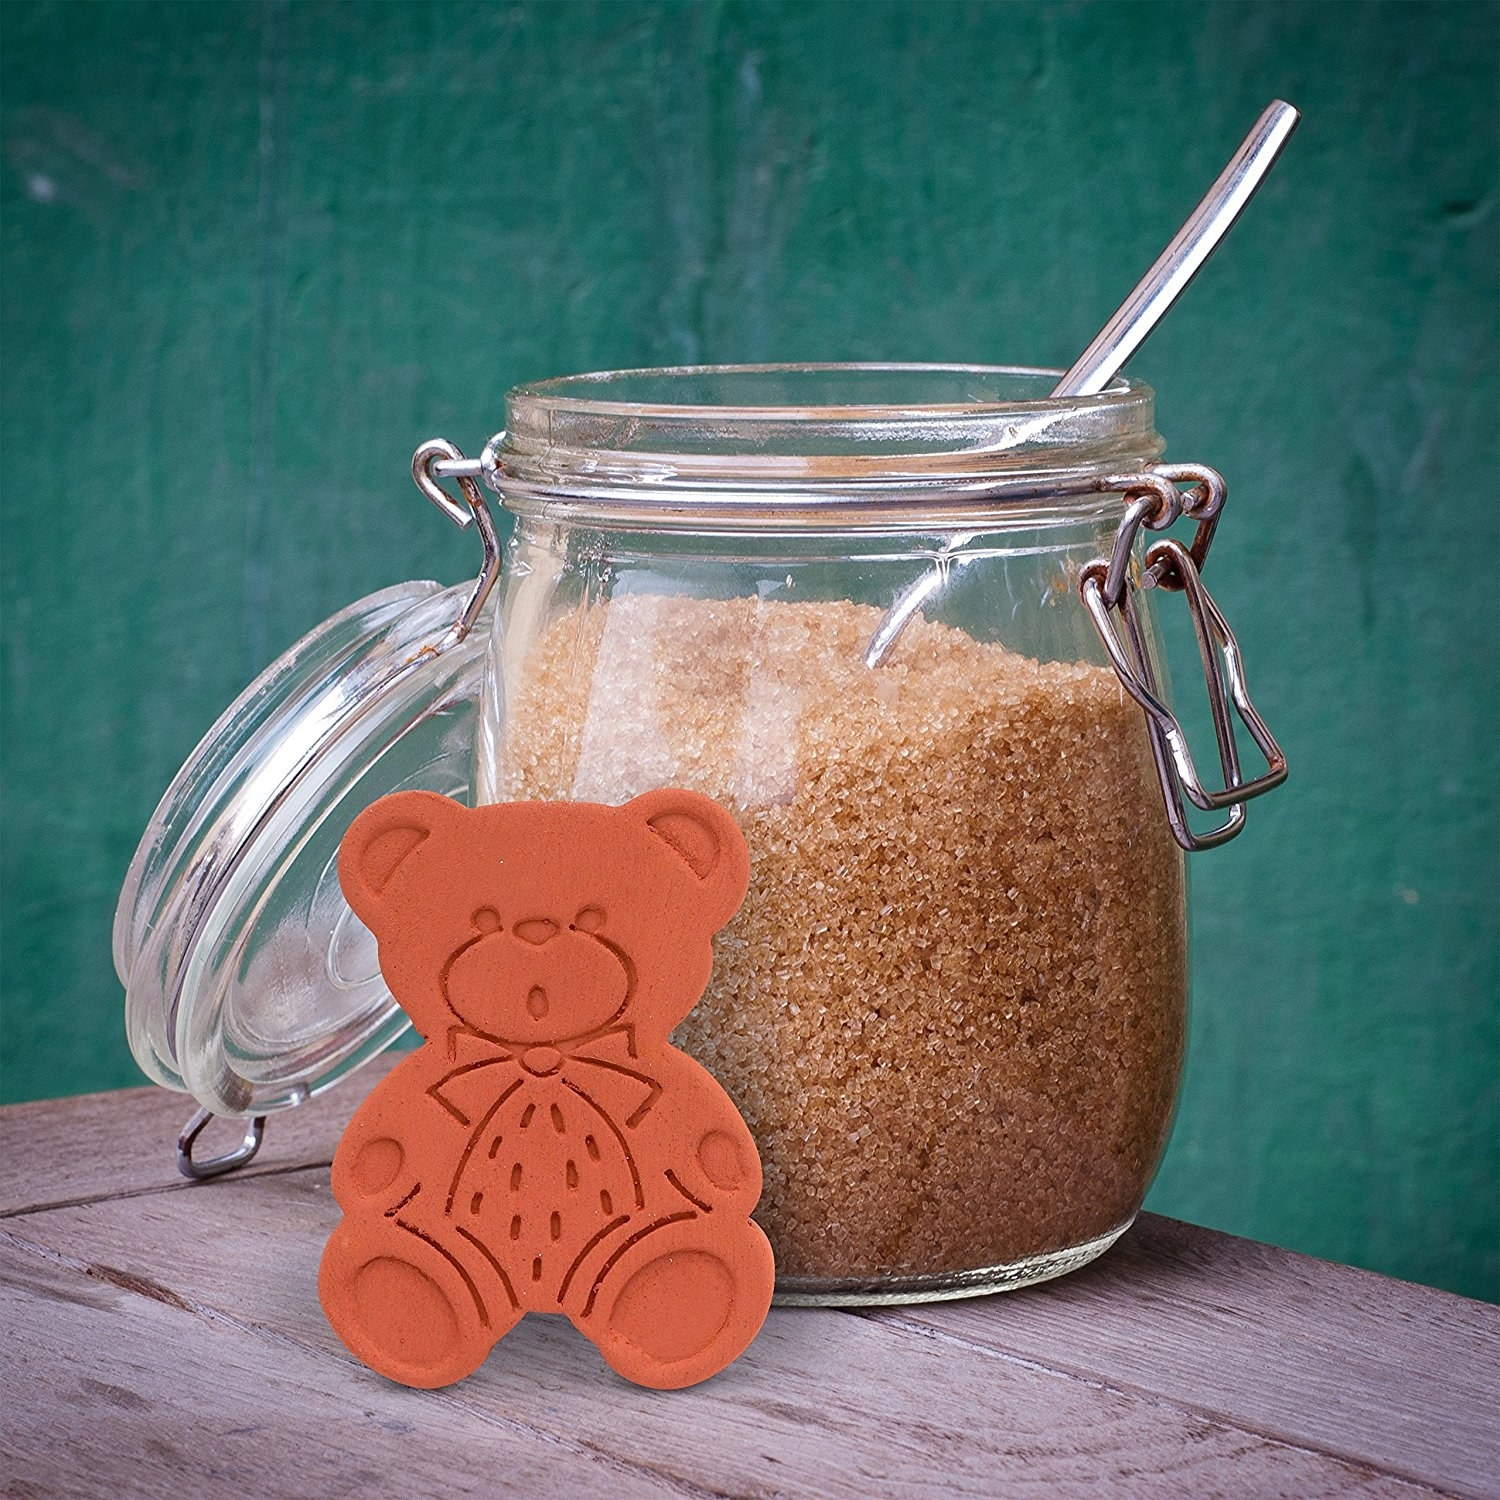 Photo of jar of sugar on table next to terracotta bear